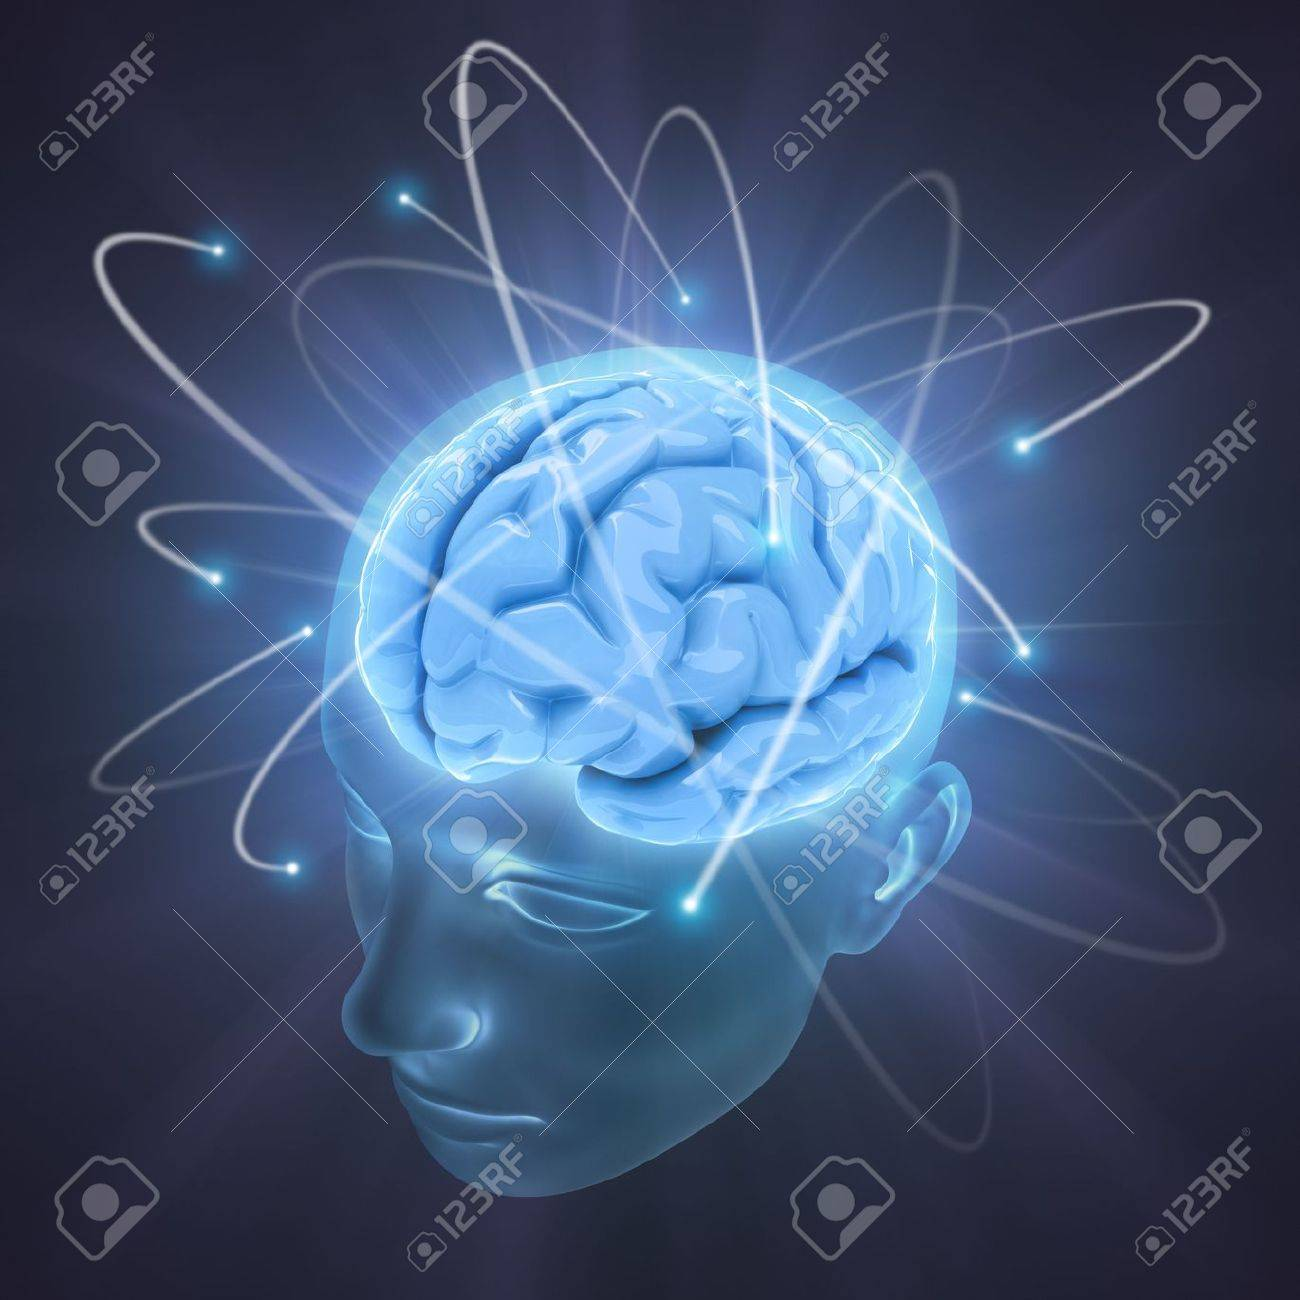 Electrons revolve around the brain. Concept of idea, the power of mind. Stock Photo - 3582151